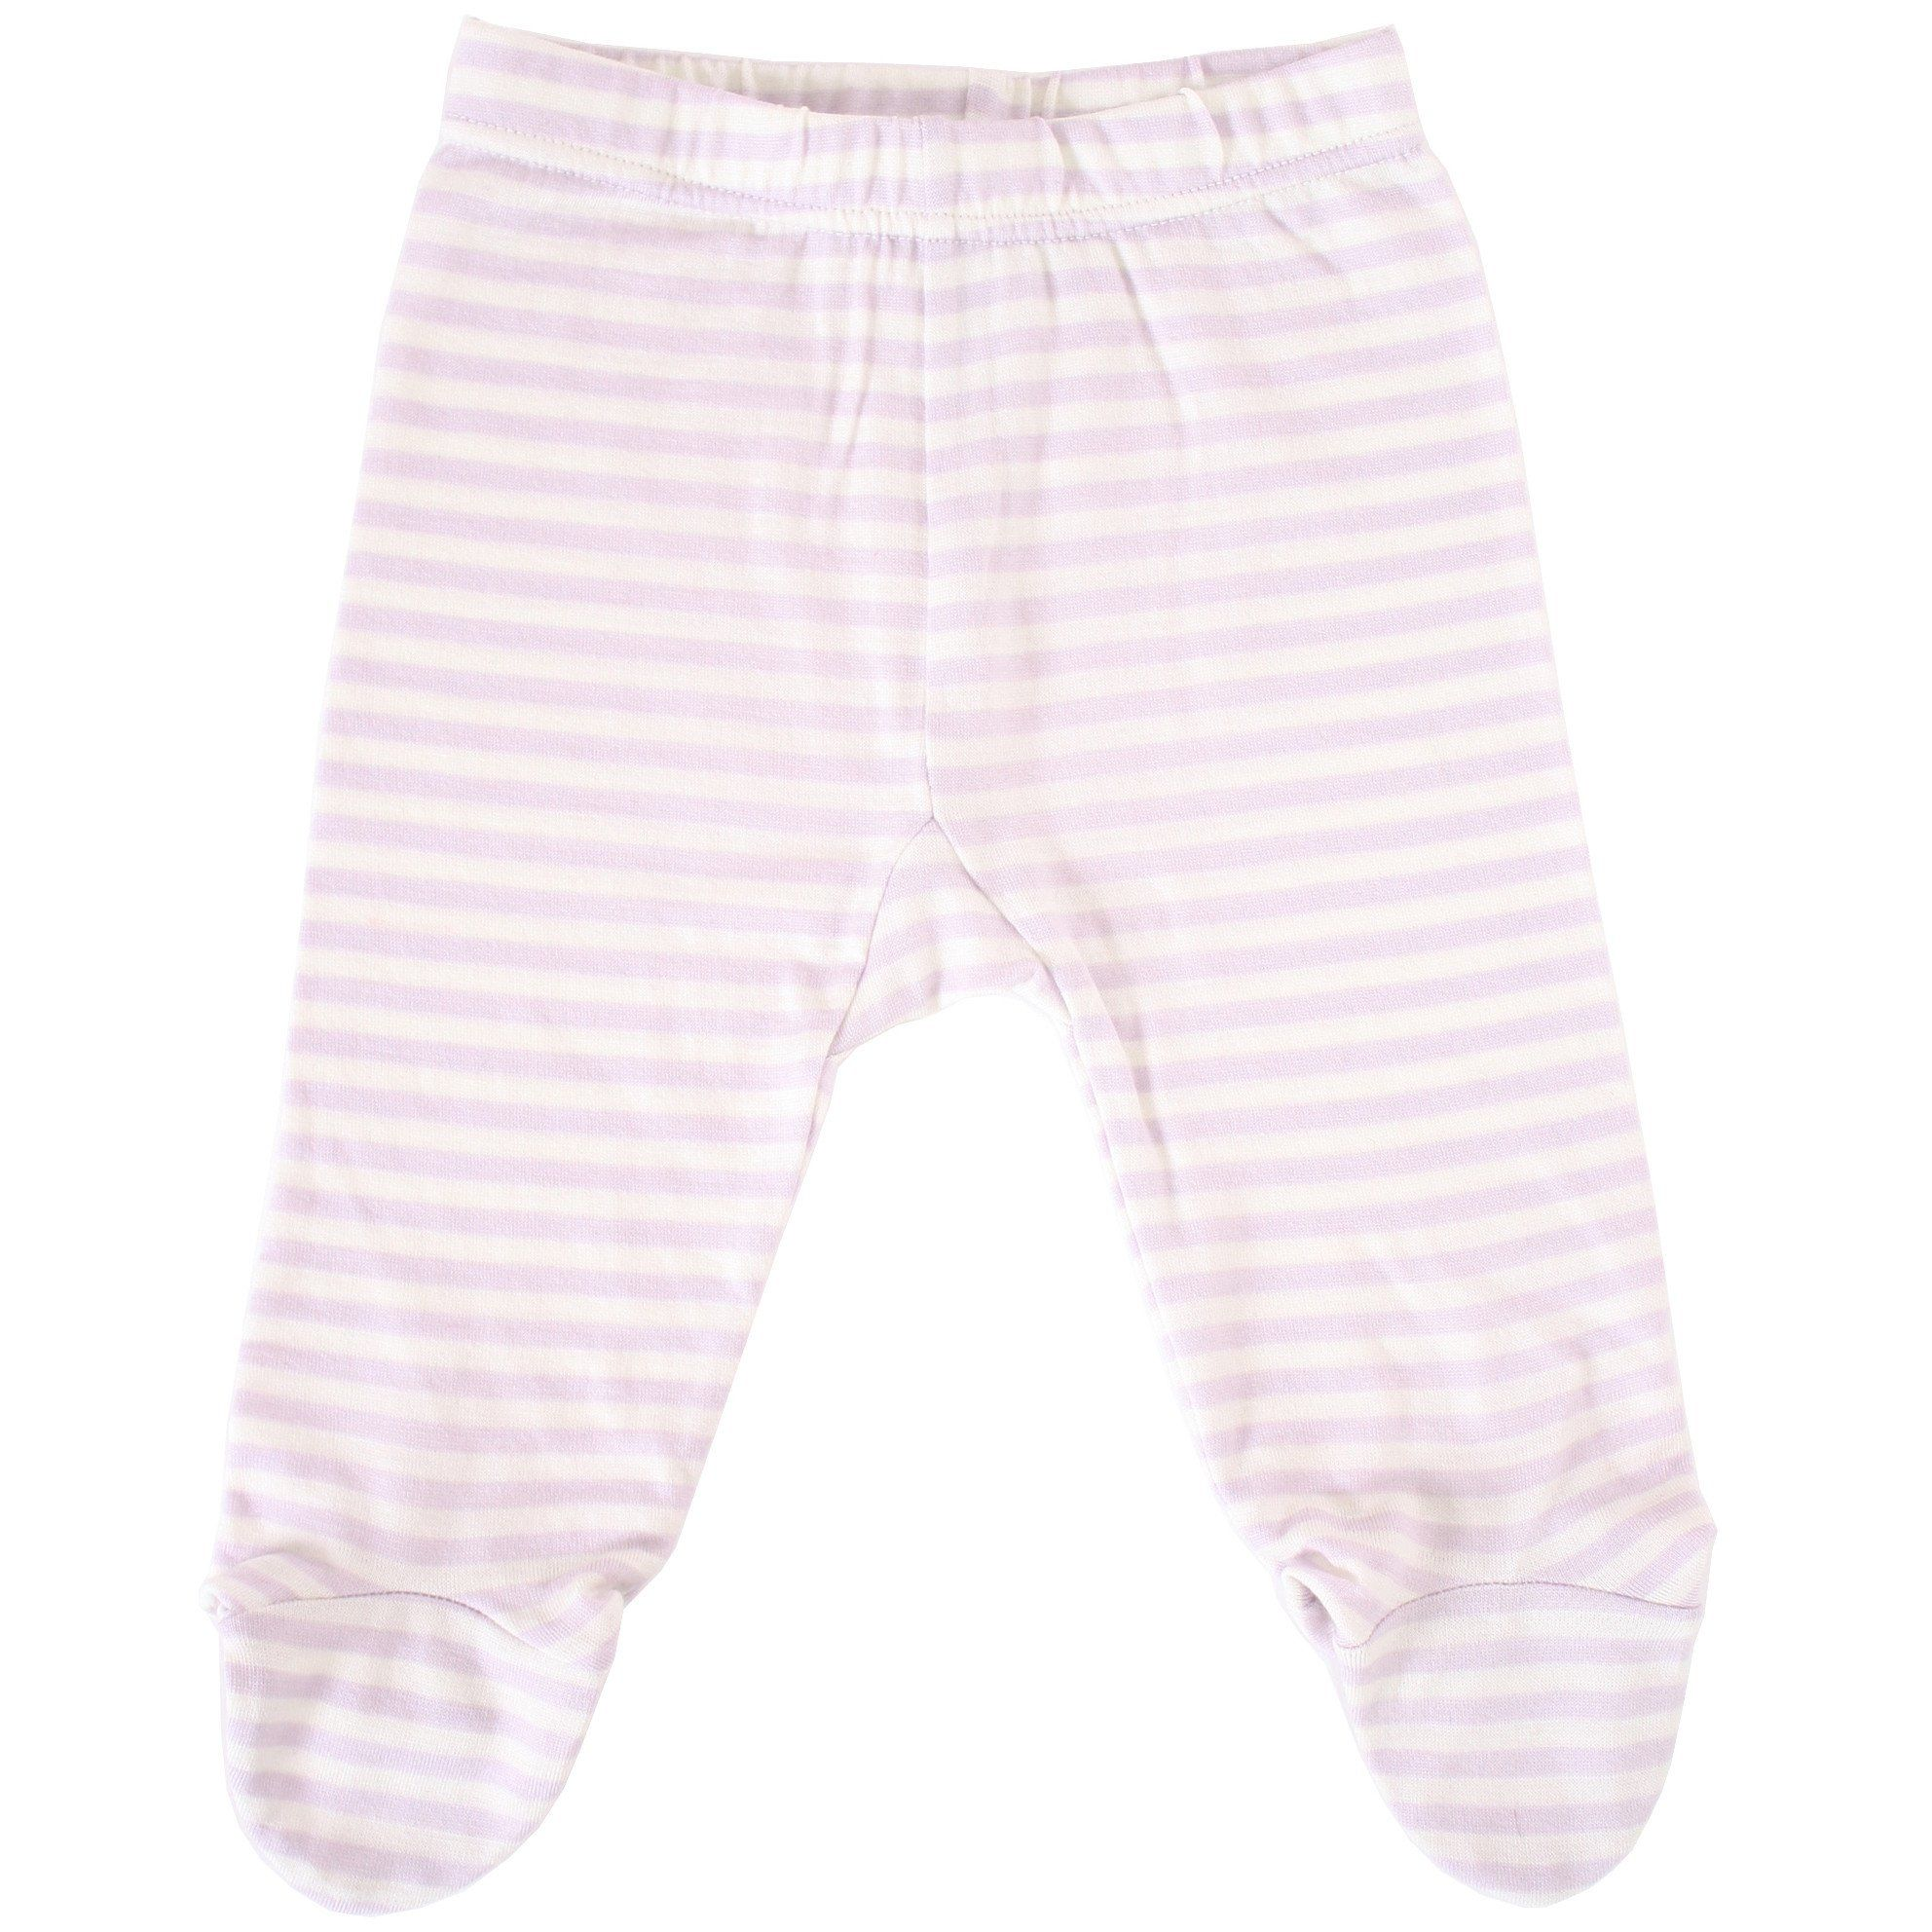 ff8722597 Baby Footed Pants